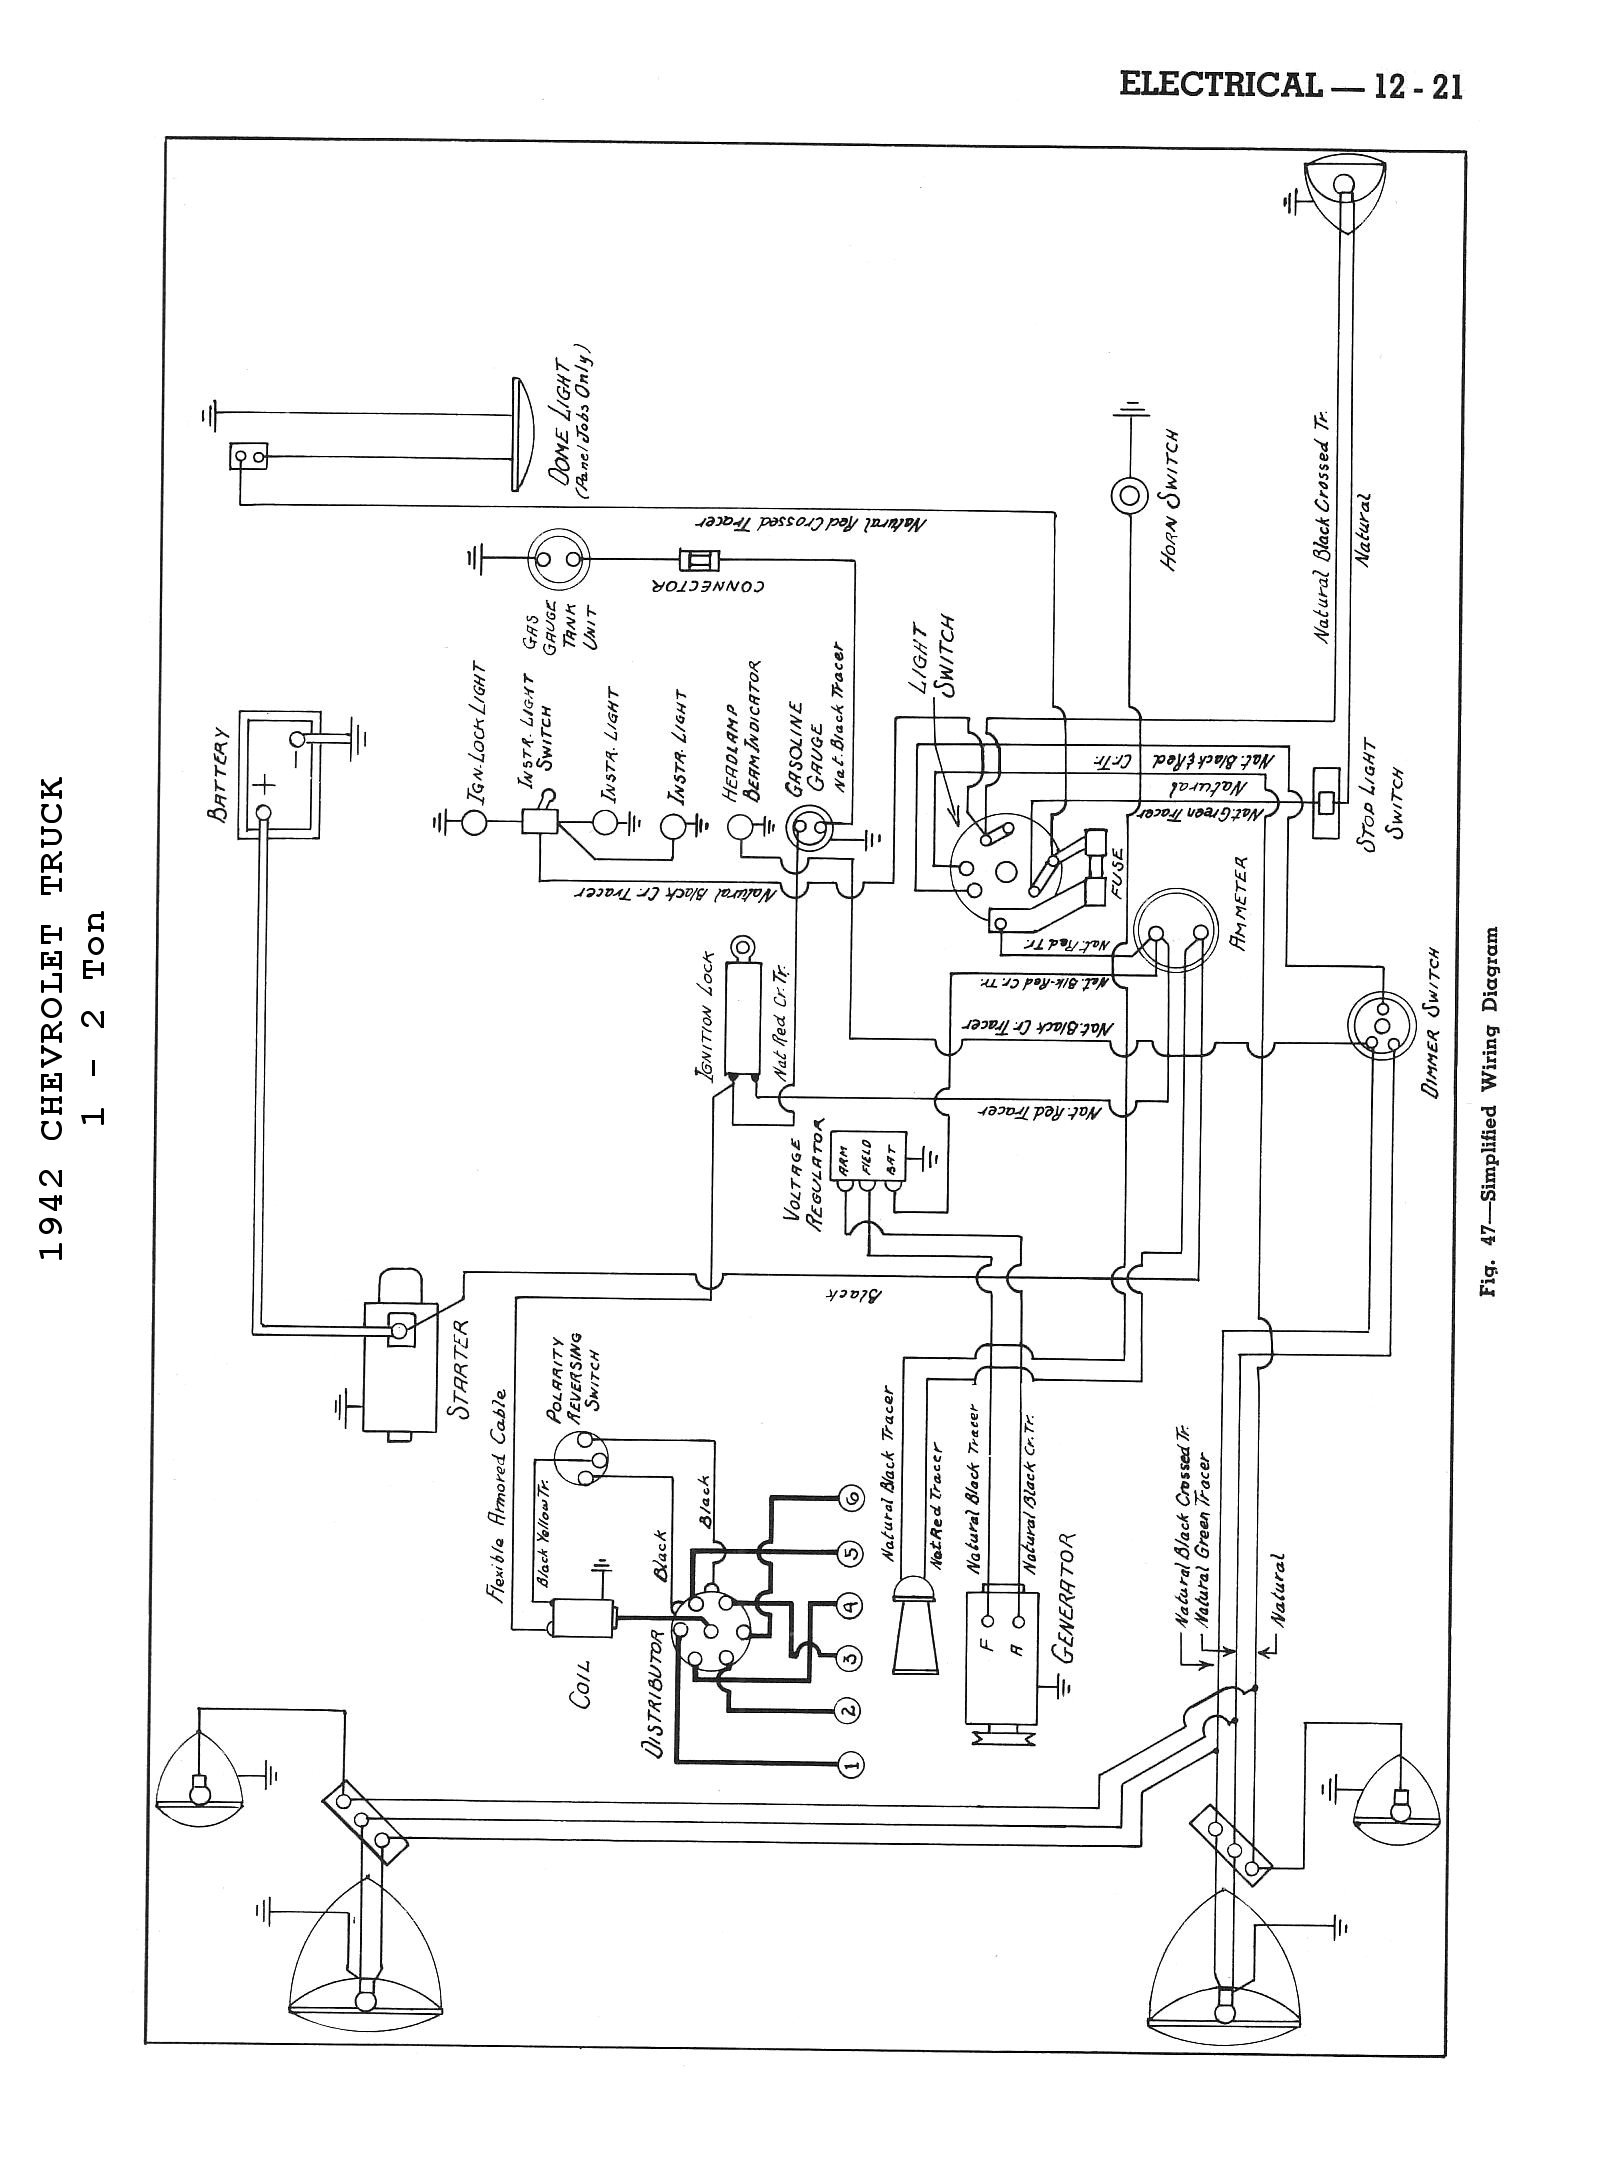 42cm4x2t1221 cm wiring diagram cm hoist wiring diagram \u2022 wiring diagrams j boston subsat 6 wiring diagram at pacquiaovsvargaslive.co